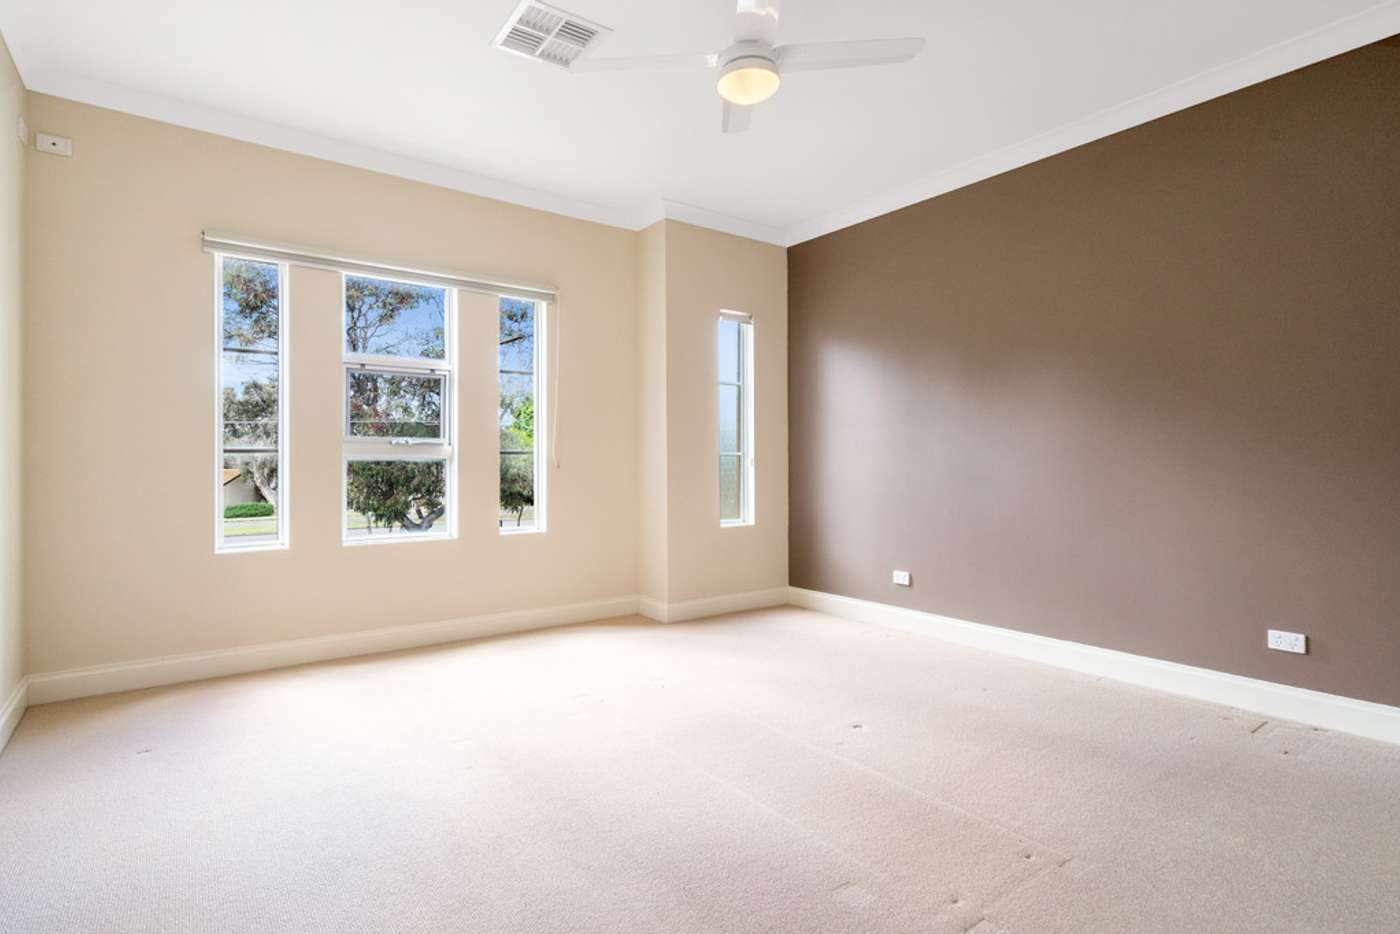 Sixth view of Homely house listing, 624a Burbridge Road, West Beach SA 5024